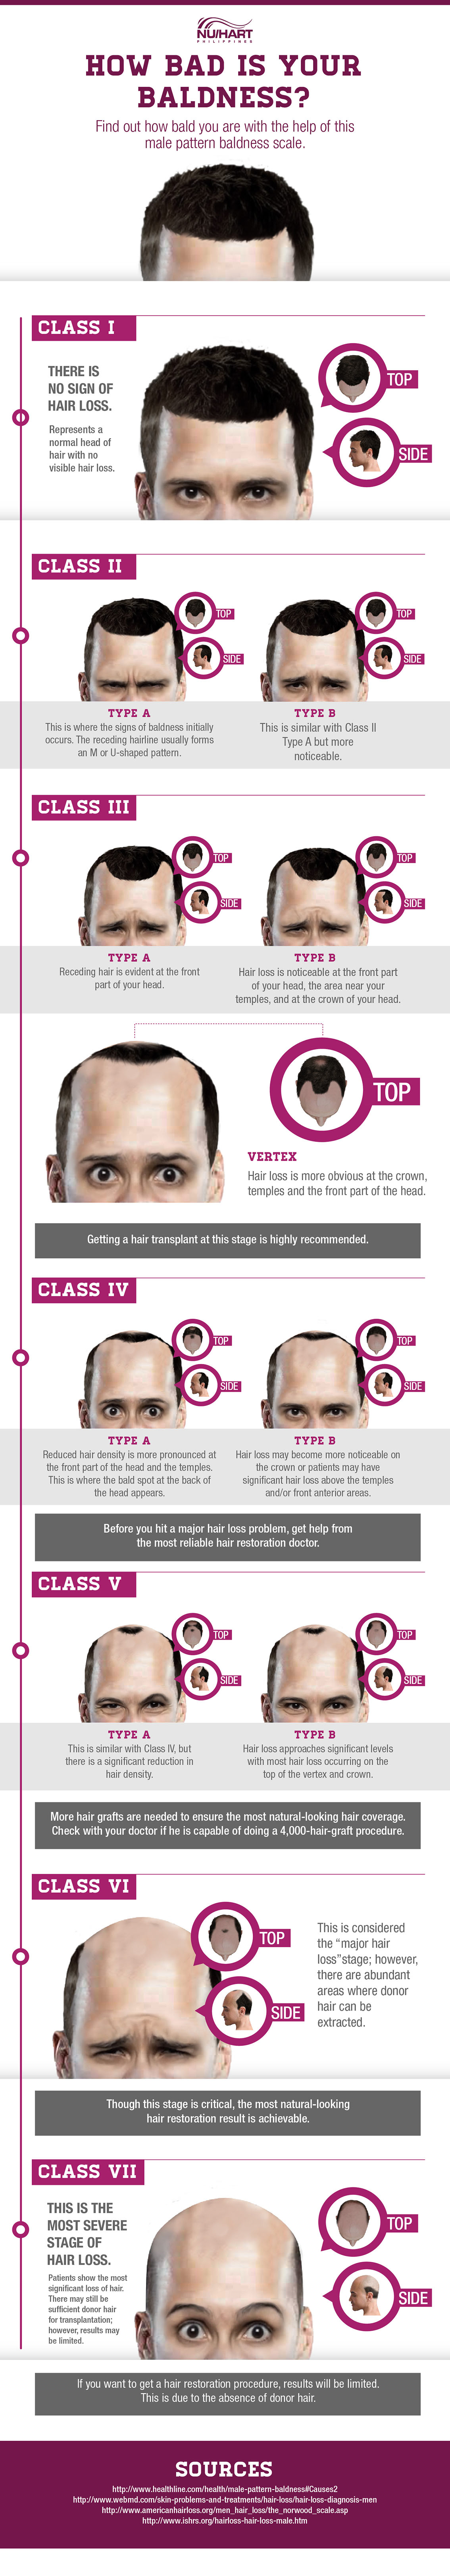 Stages of Male Pattern Baldness - Hair Loss Chart Infographic